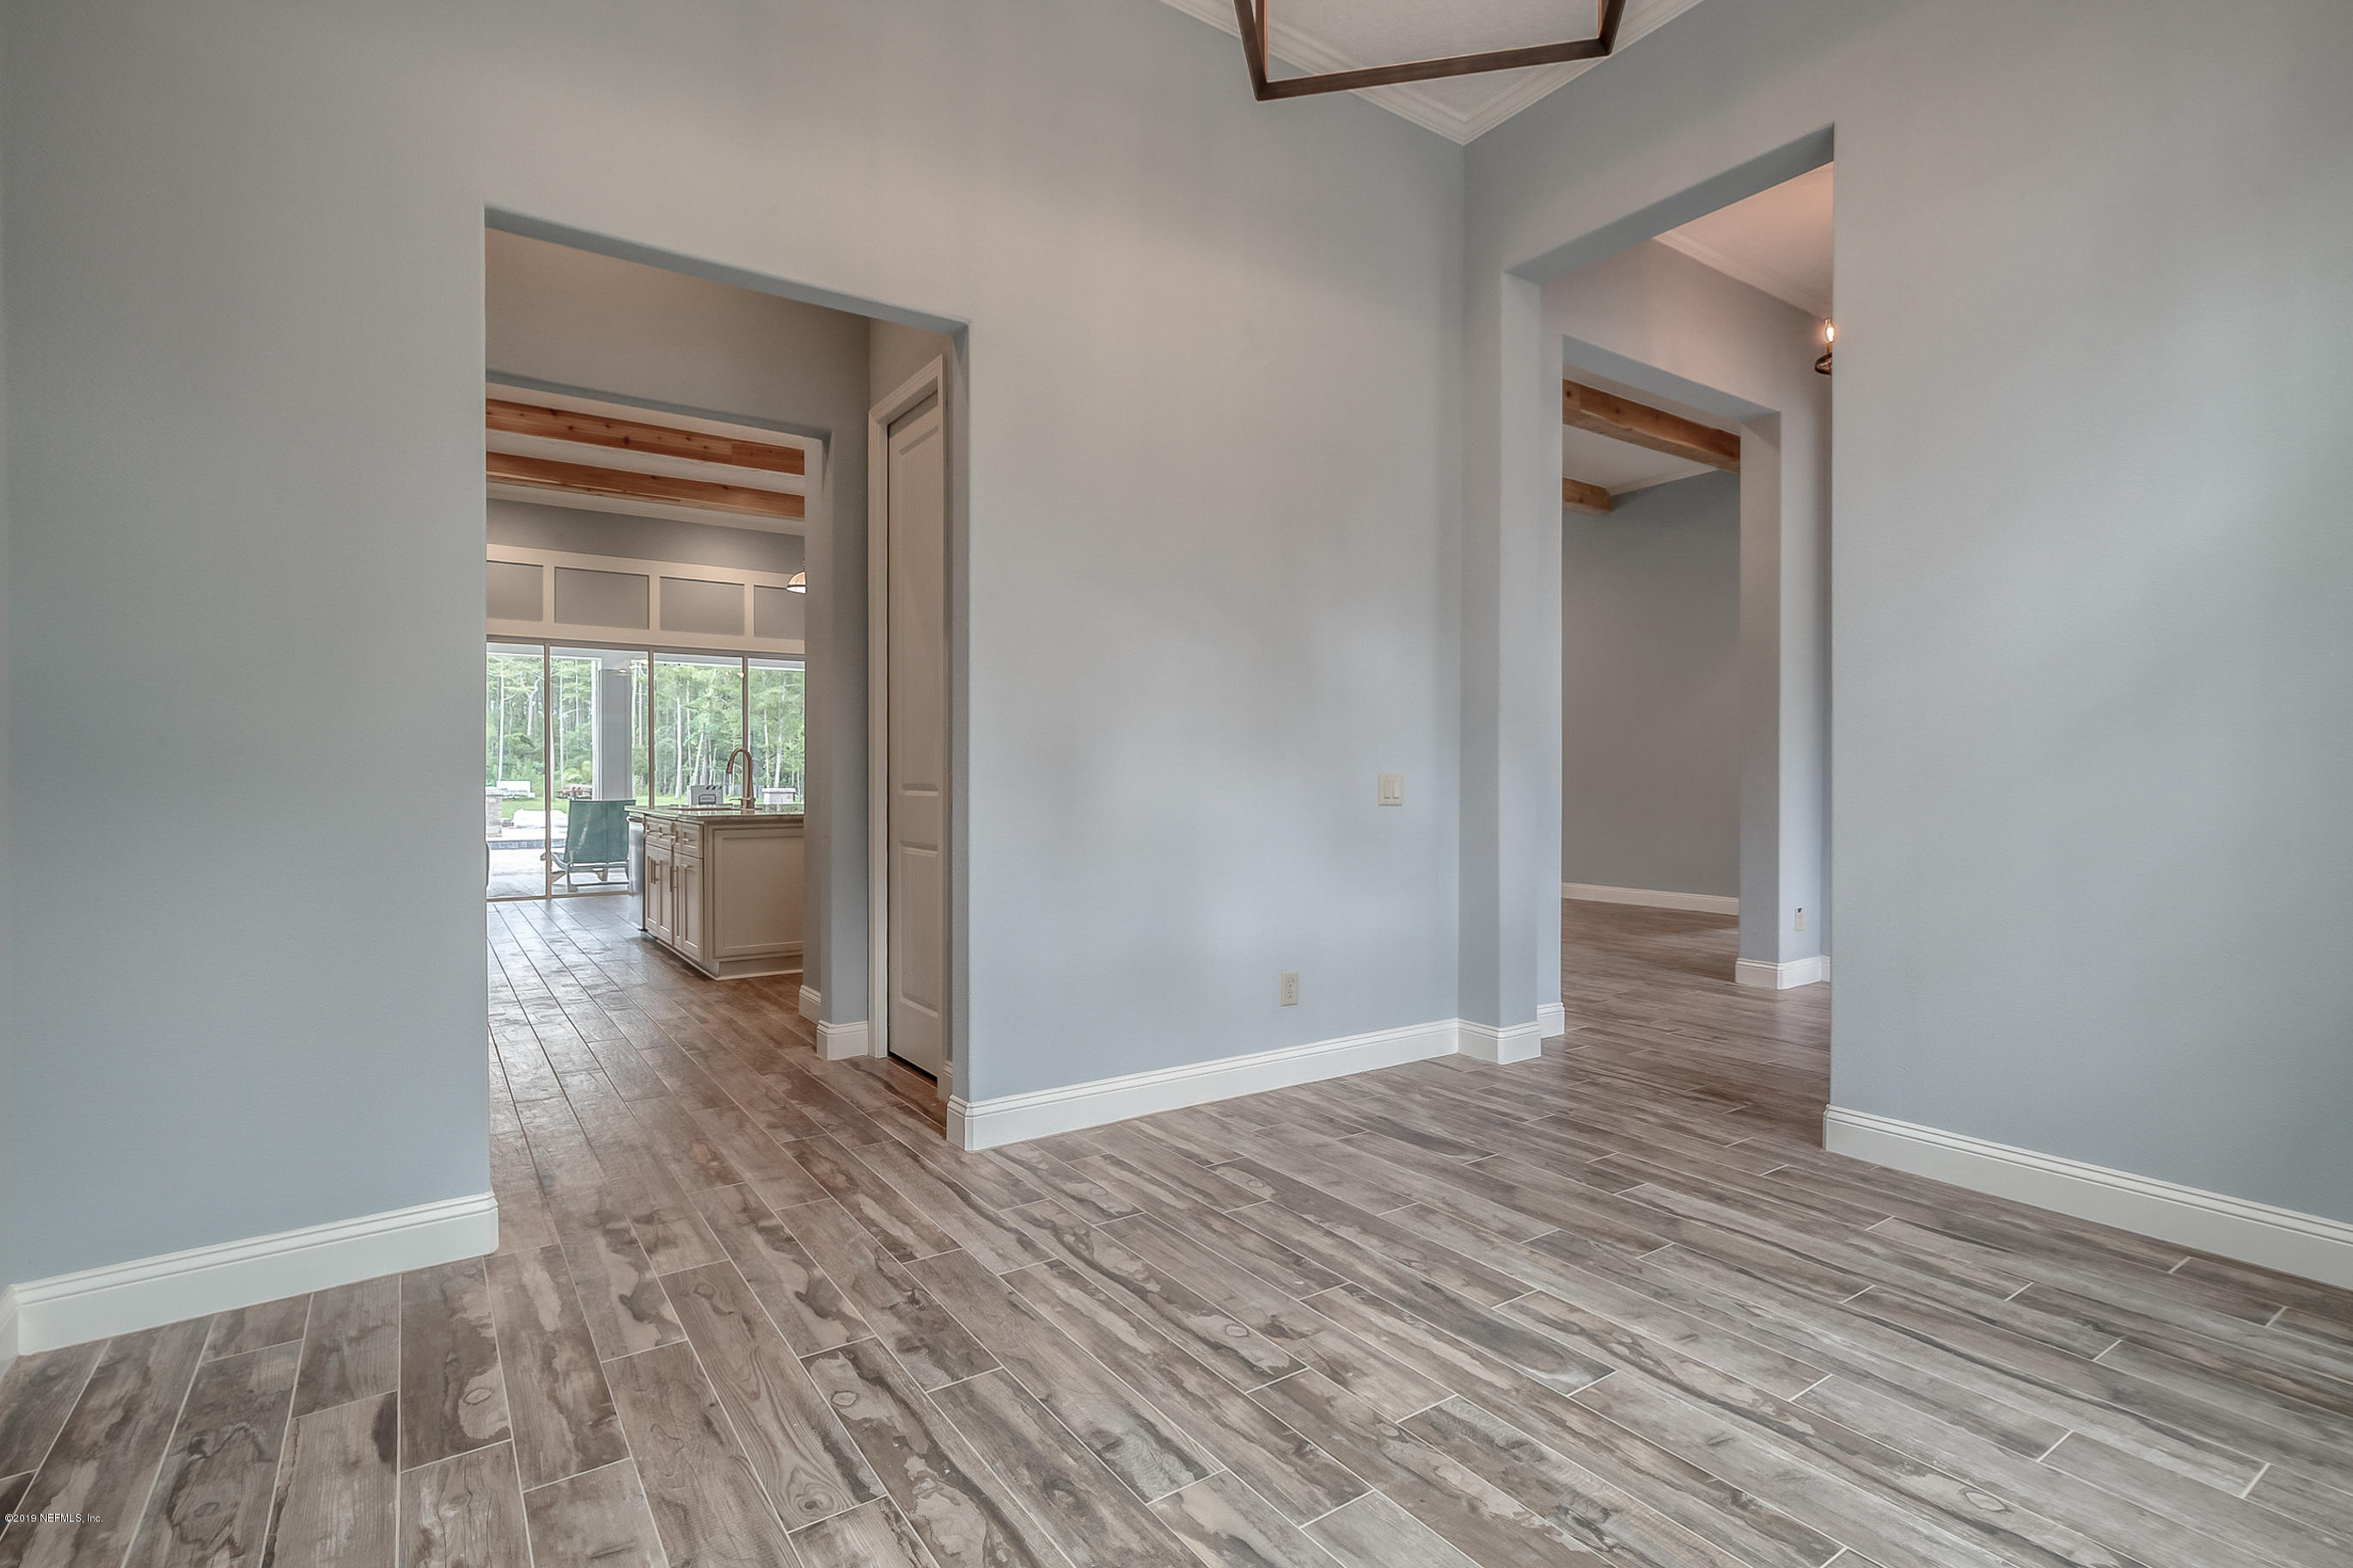 4162-1 RIVERVIEW, GREEN COVE SPRINGS, FLORIDA 32043, 4 Bedrooms Bedrooms, ,3 BathroomsBathrooms,Residential - single family,For sale,RIVERVIEW,1016413